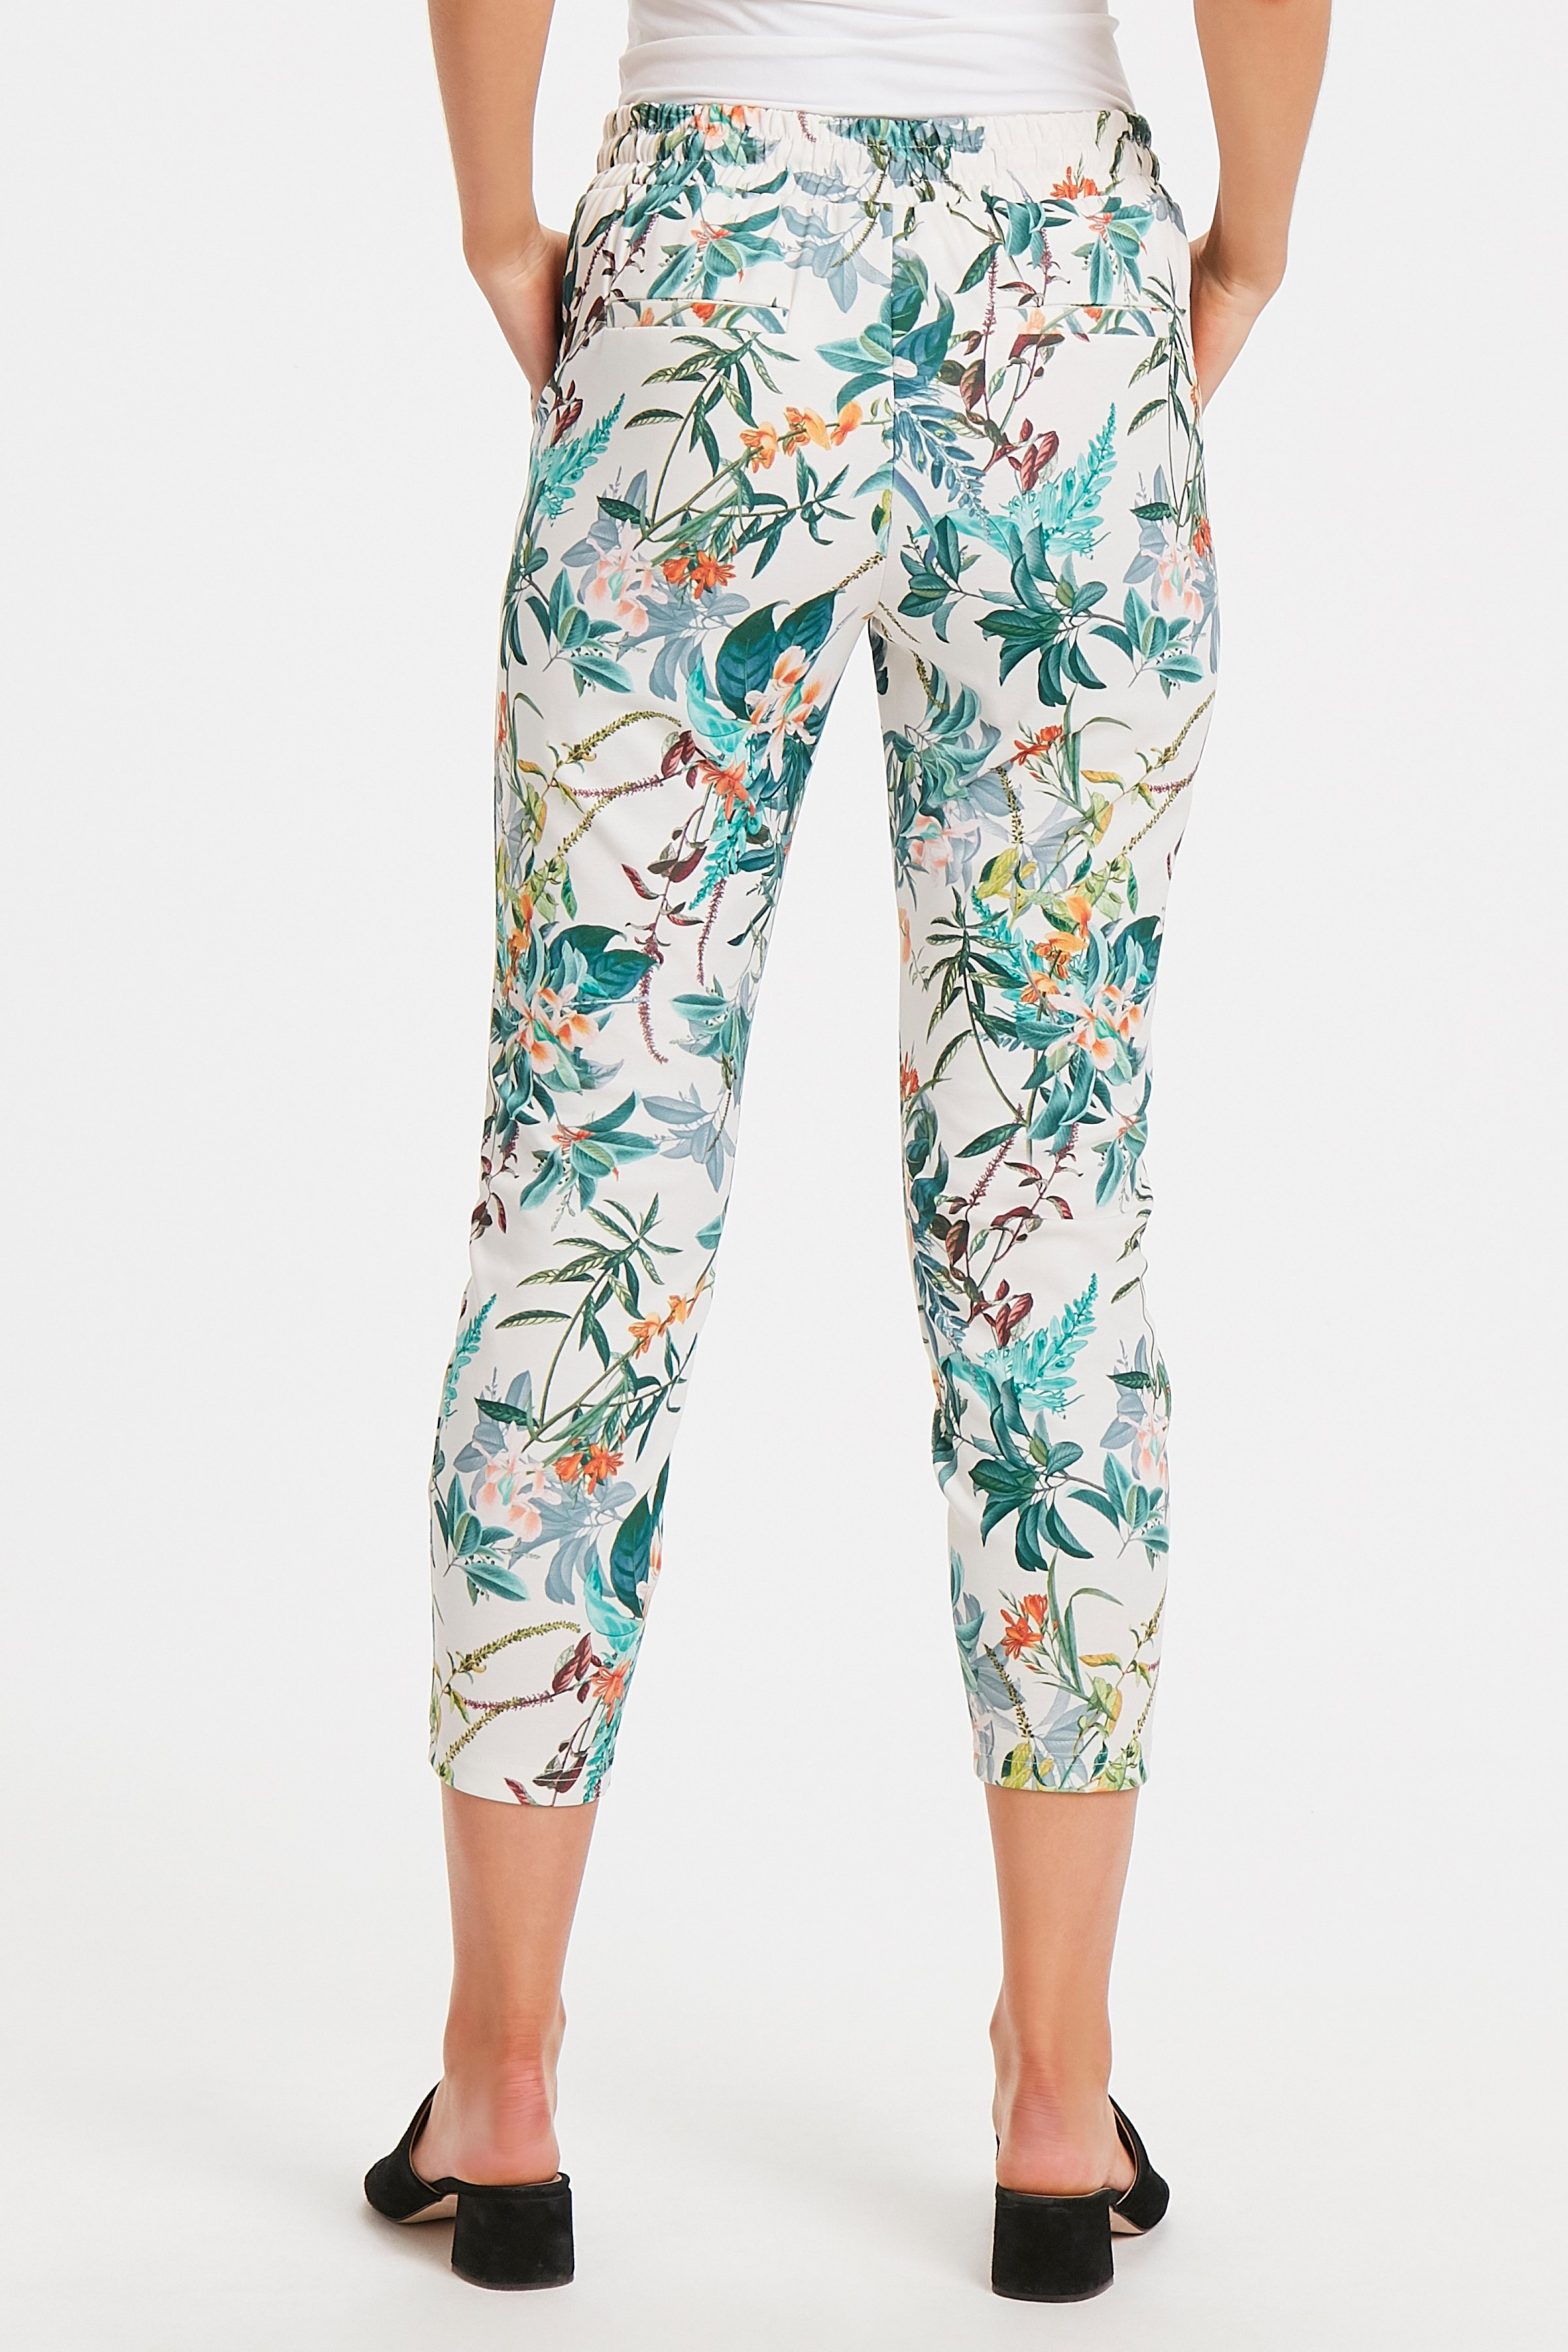 Off White combi Pants Casual fra b.young – Køb Off White combi Pants Casual fra str. XS-XXL her